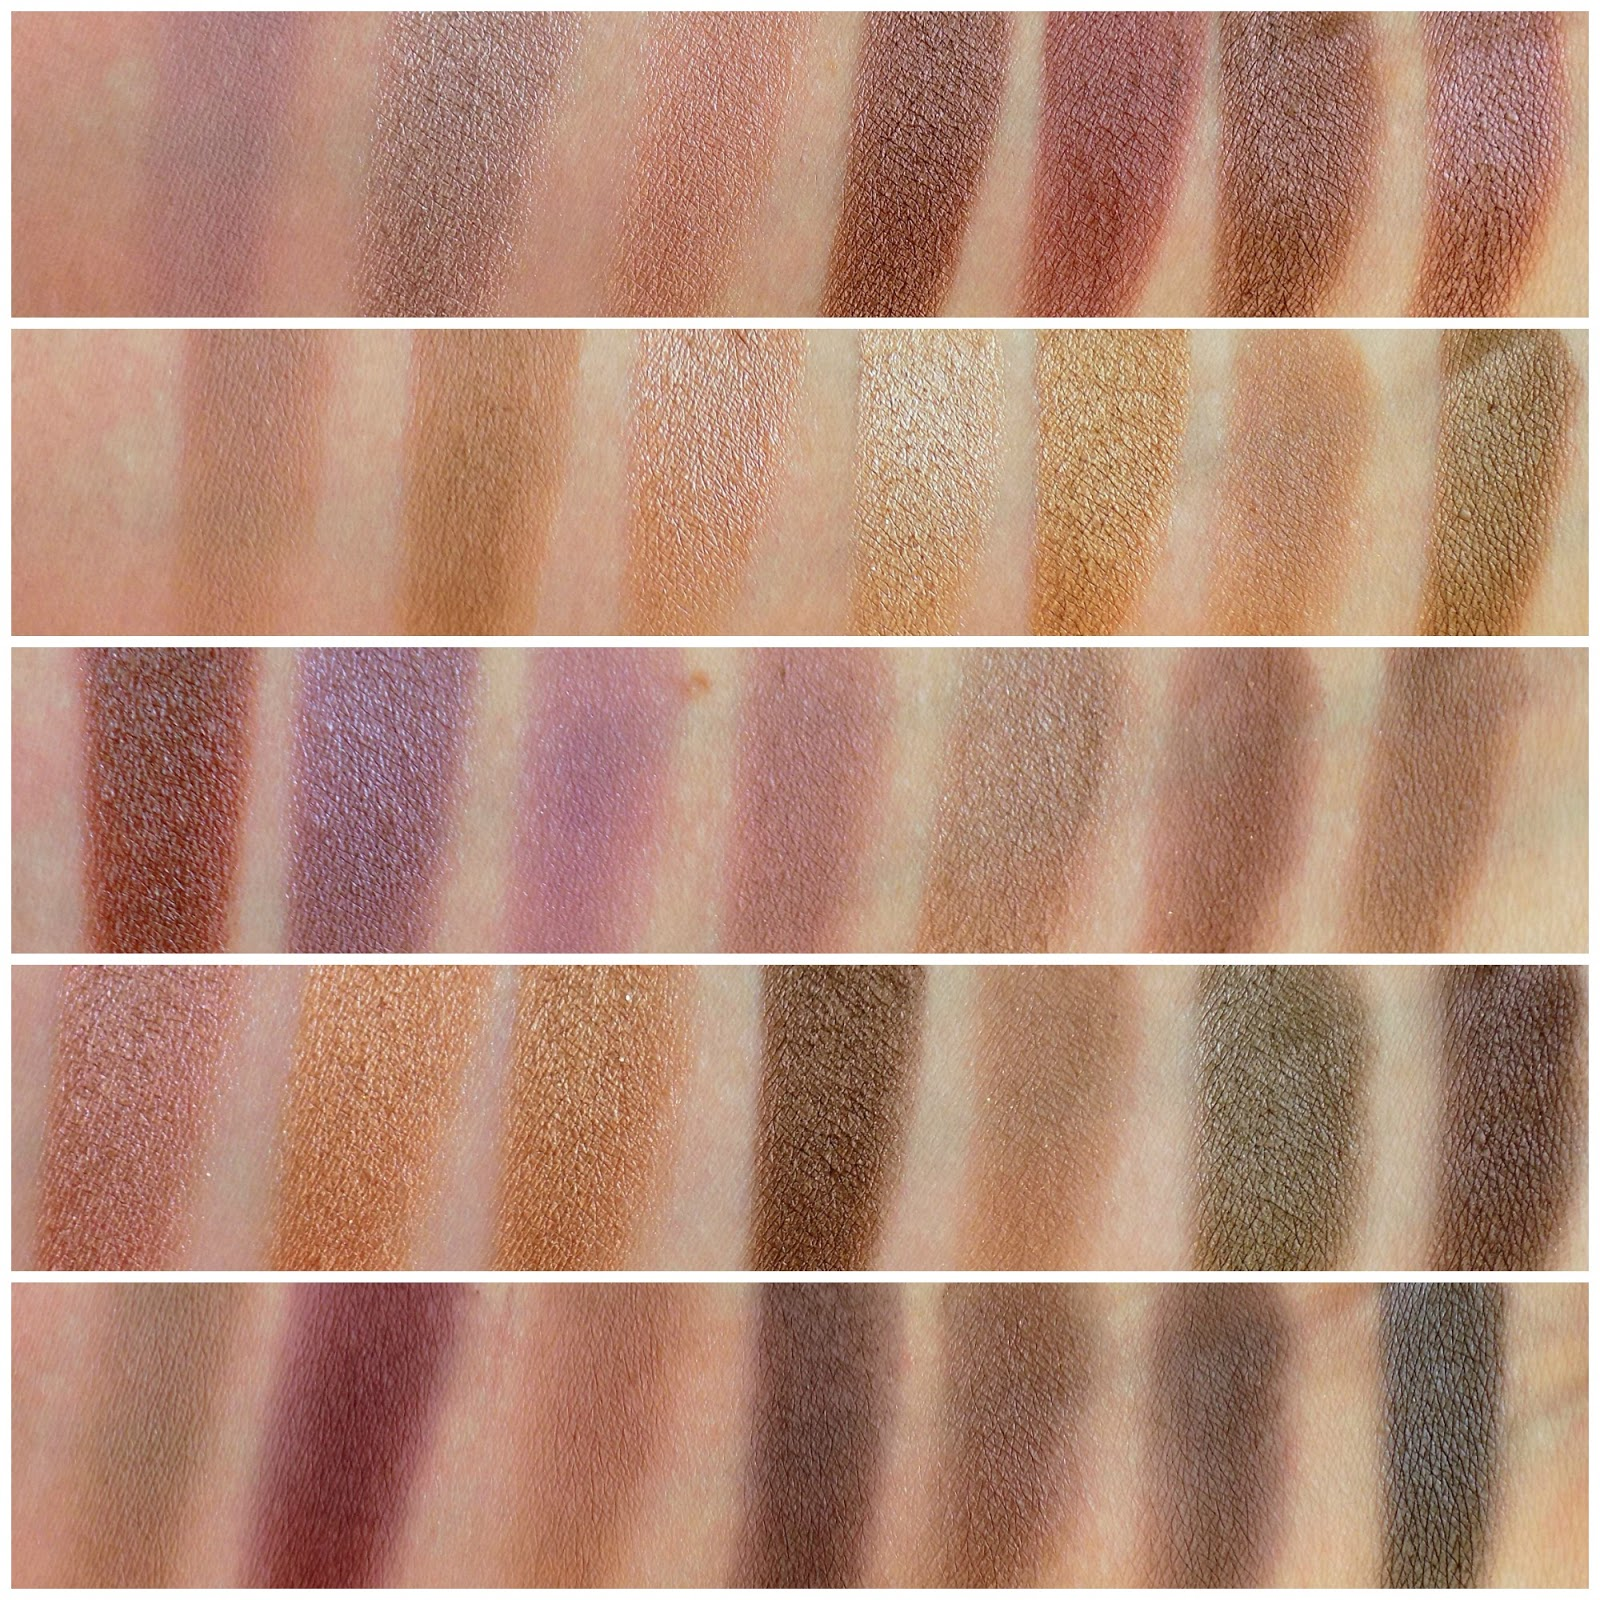 Morphe Brushes 35T palette swatches